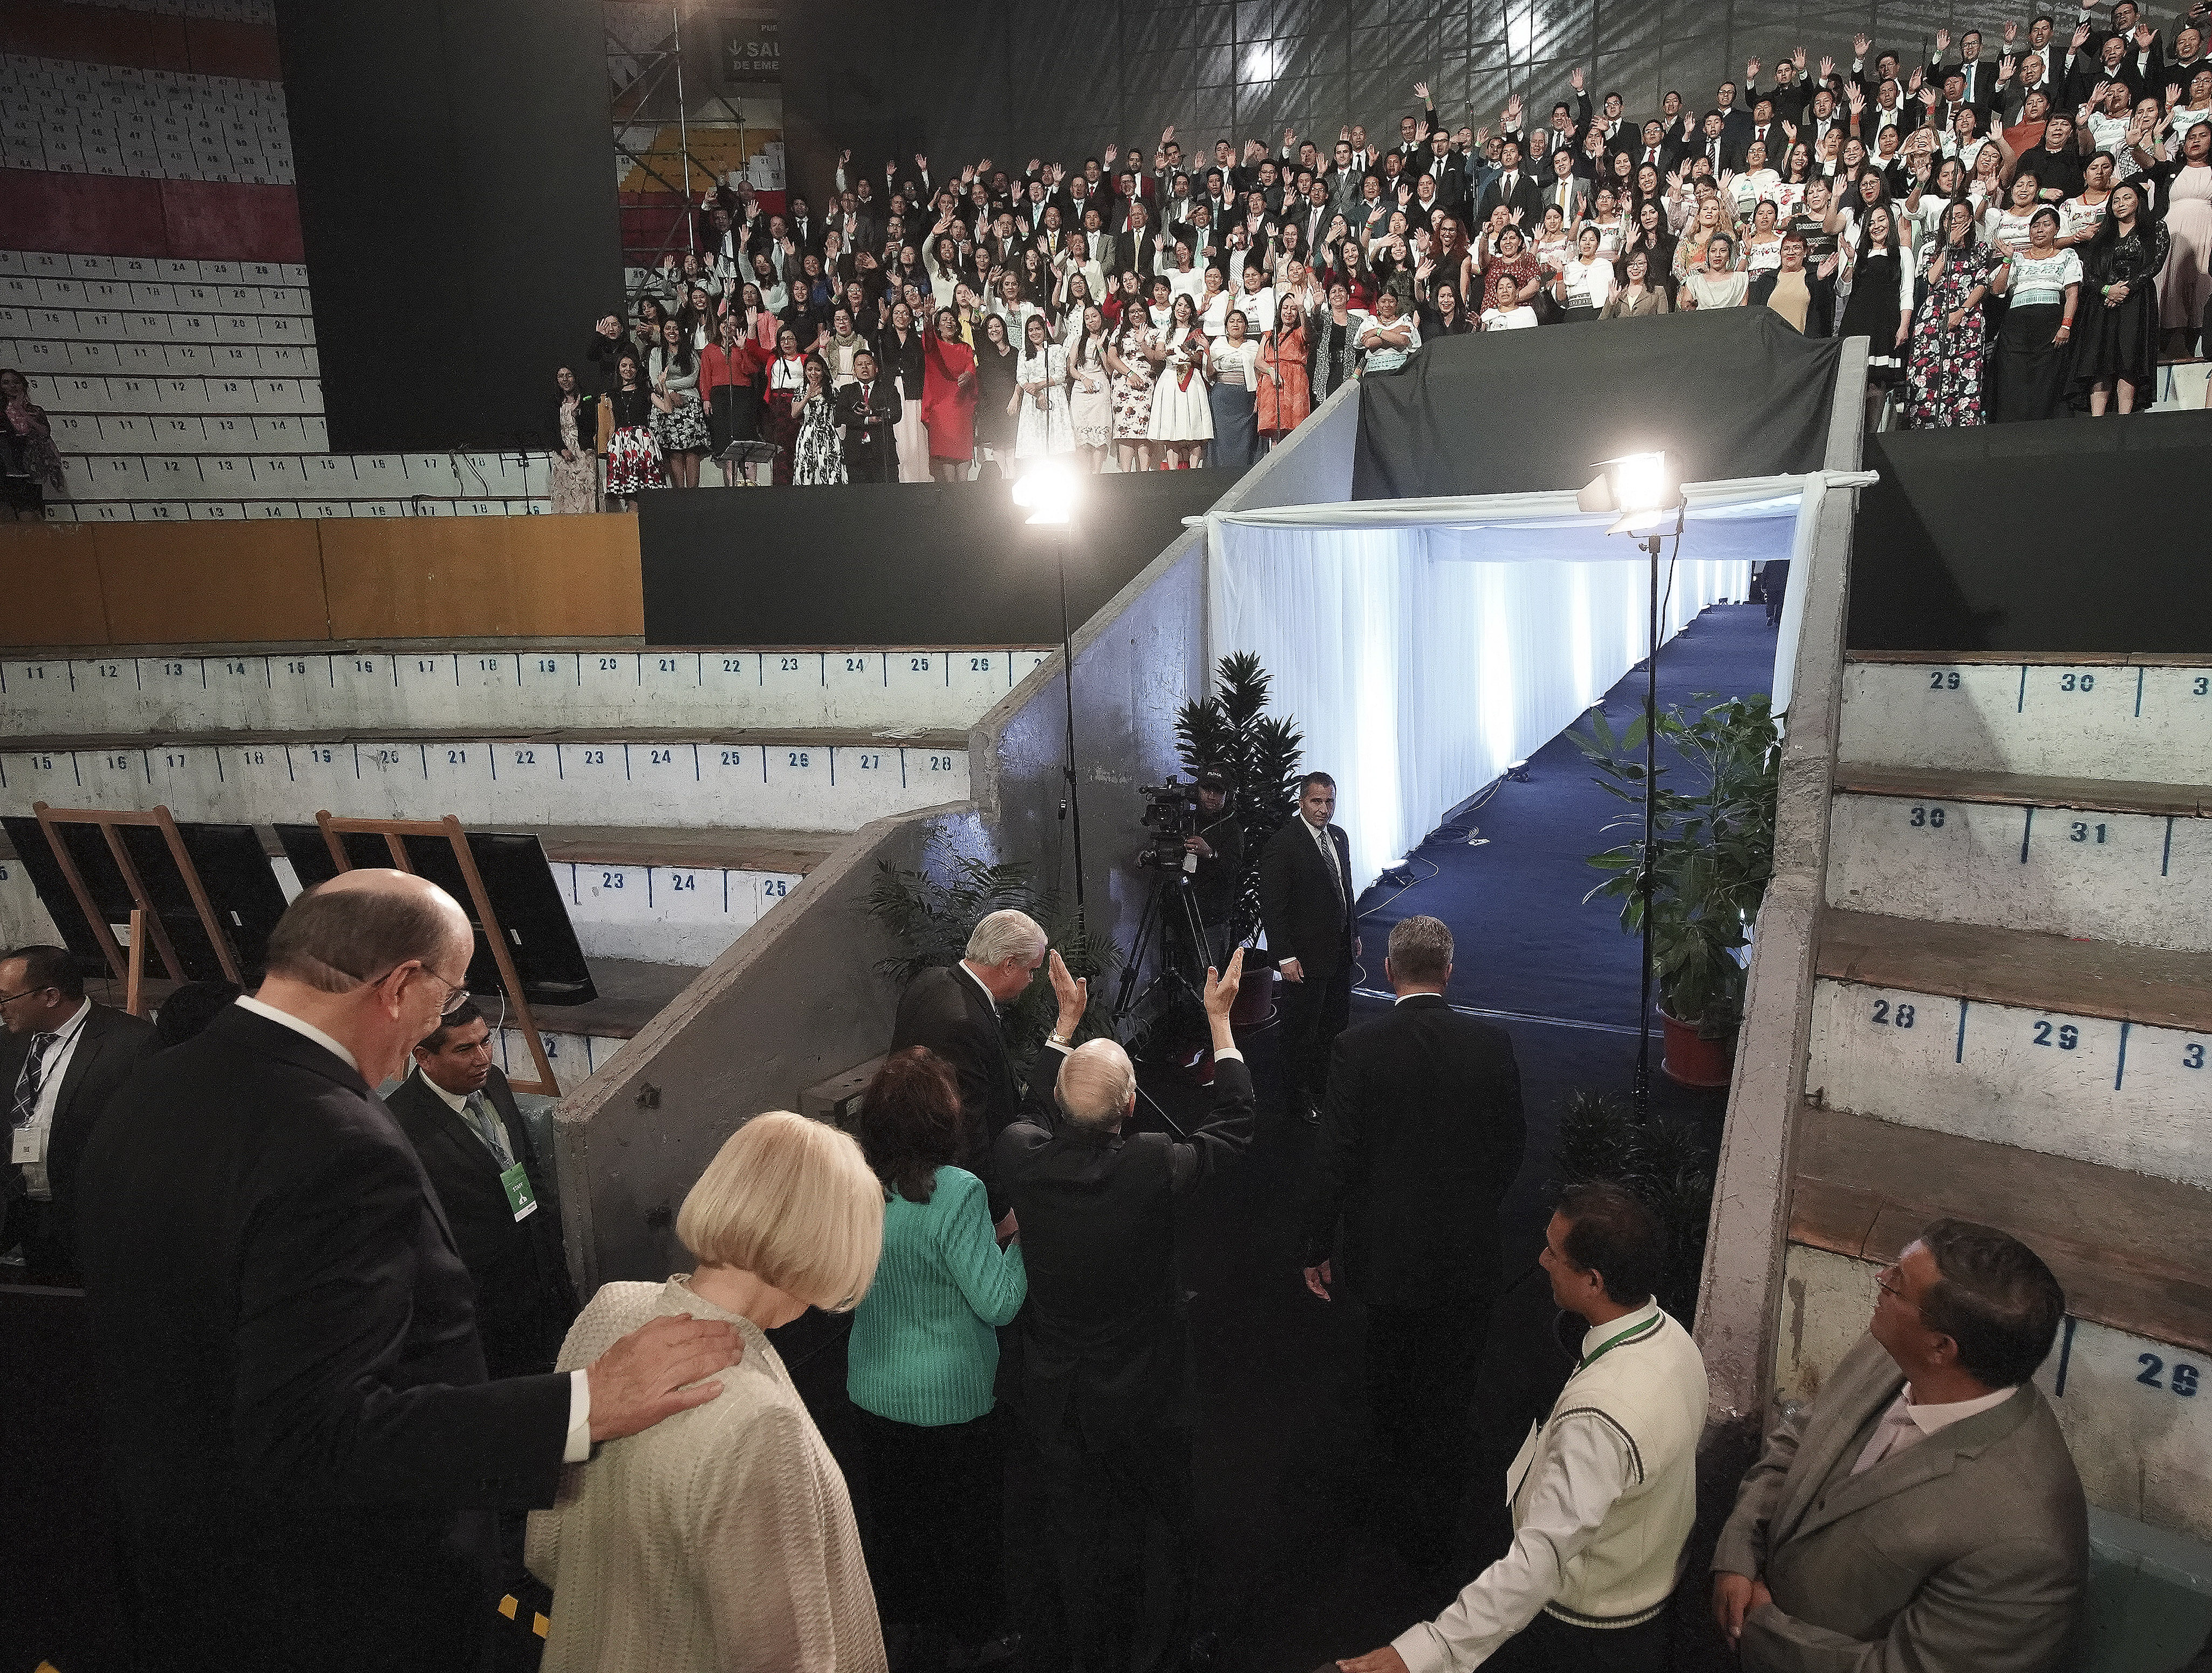 President Russell M. Nelson of The Church of Jesus Christ of Latter-day Saints waves to the choir after a devotional in Quito, Ecuador, on Monday, Aug. 26, 2019.